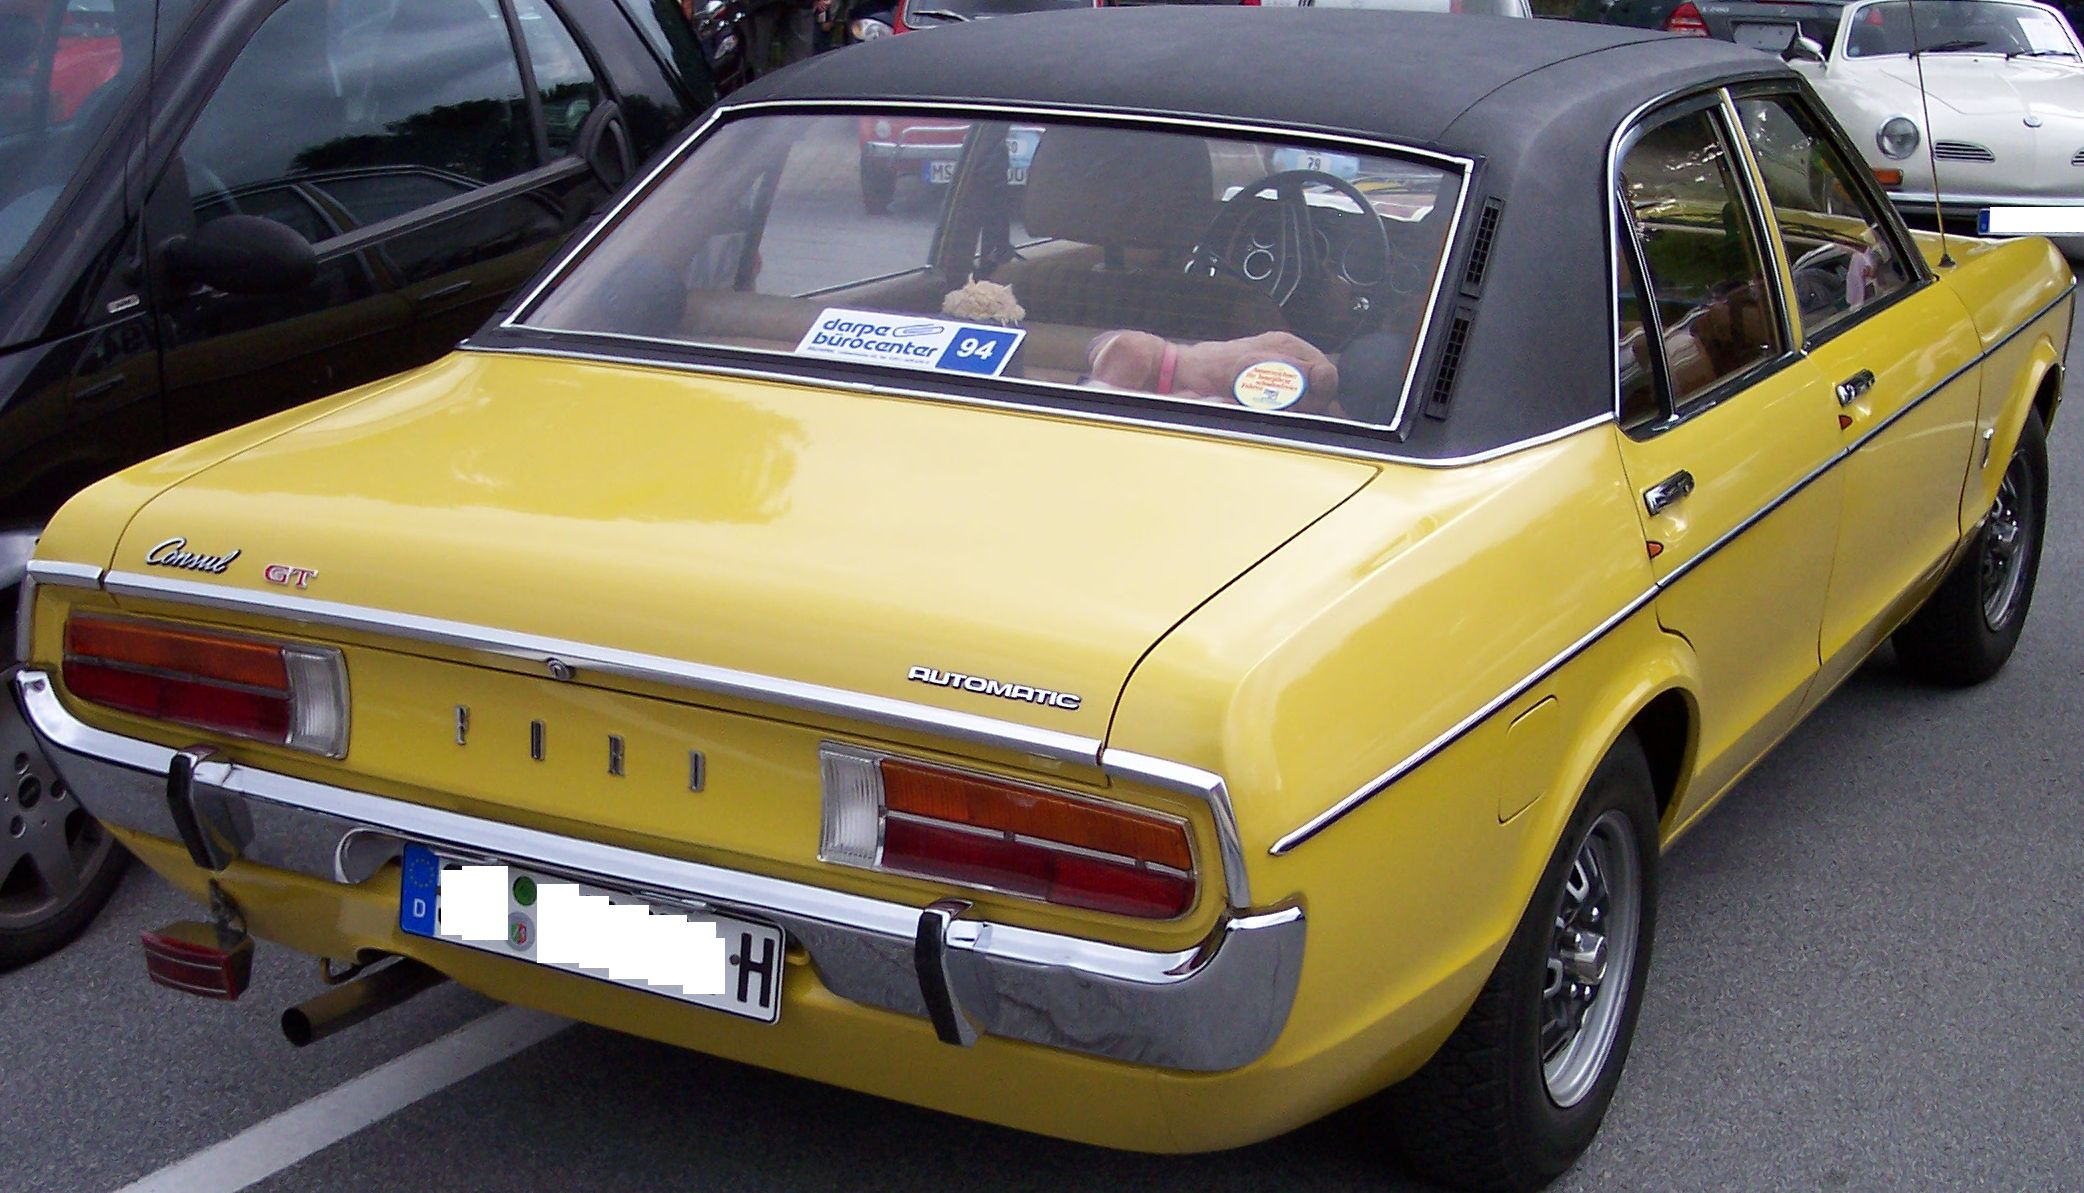 file ford consul gt 2 3 v6 yellow wikimedia commons. Black Bedroom Furniture Sets. Home Design Ideas